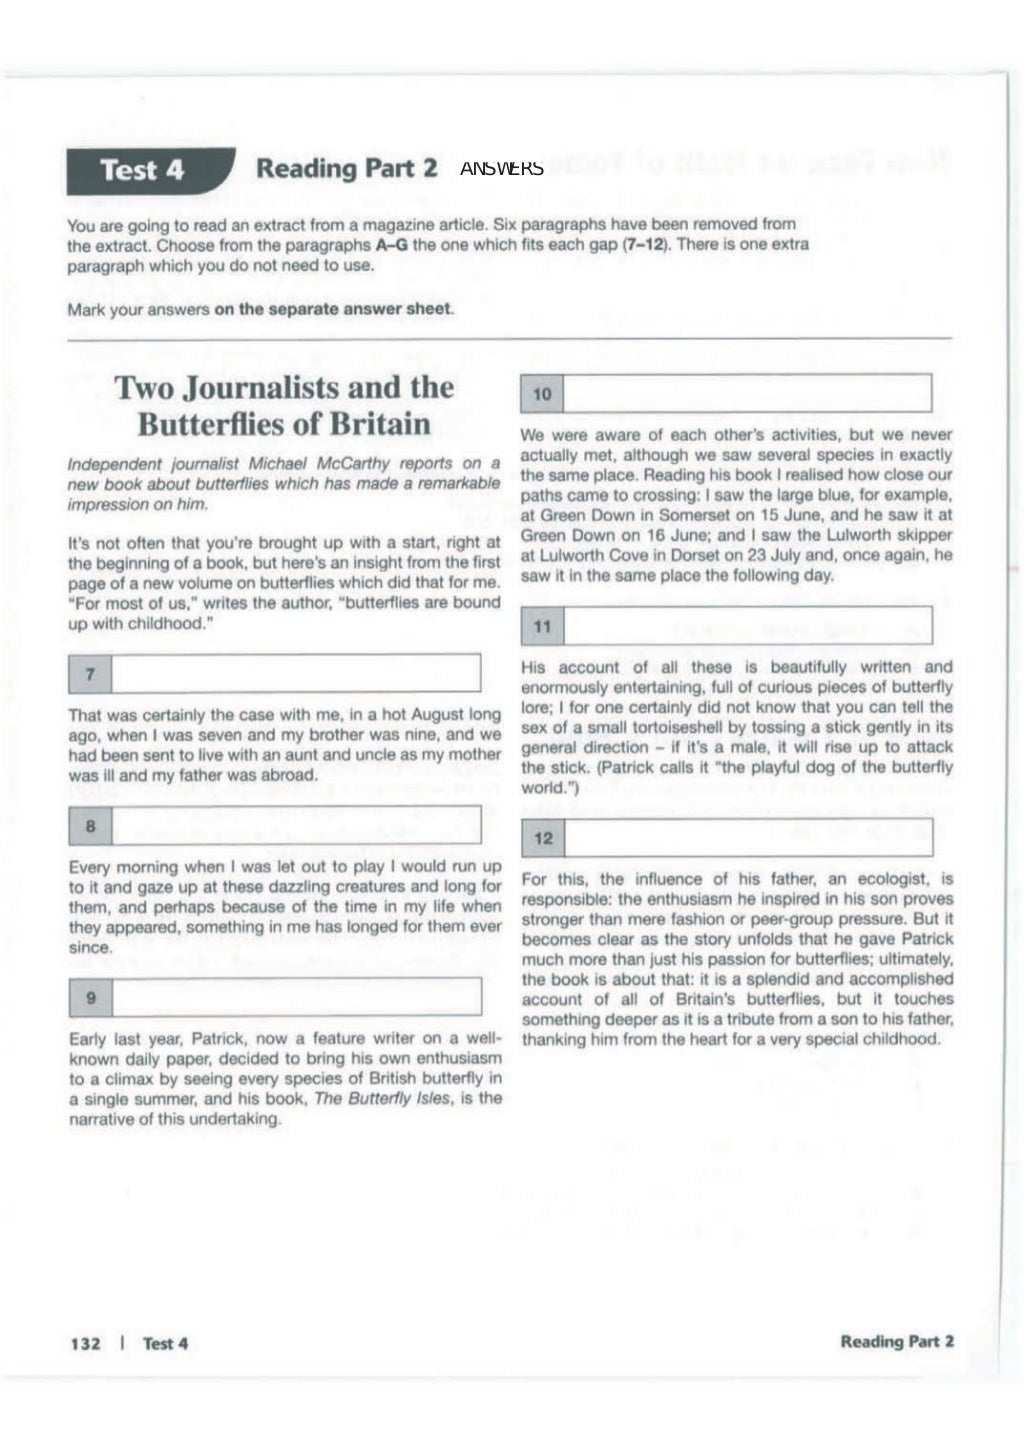 Advanced trainer 6 practice tests with answers book4joy (1) page 133